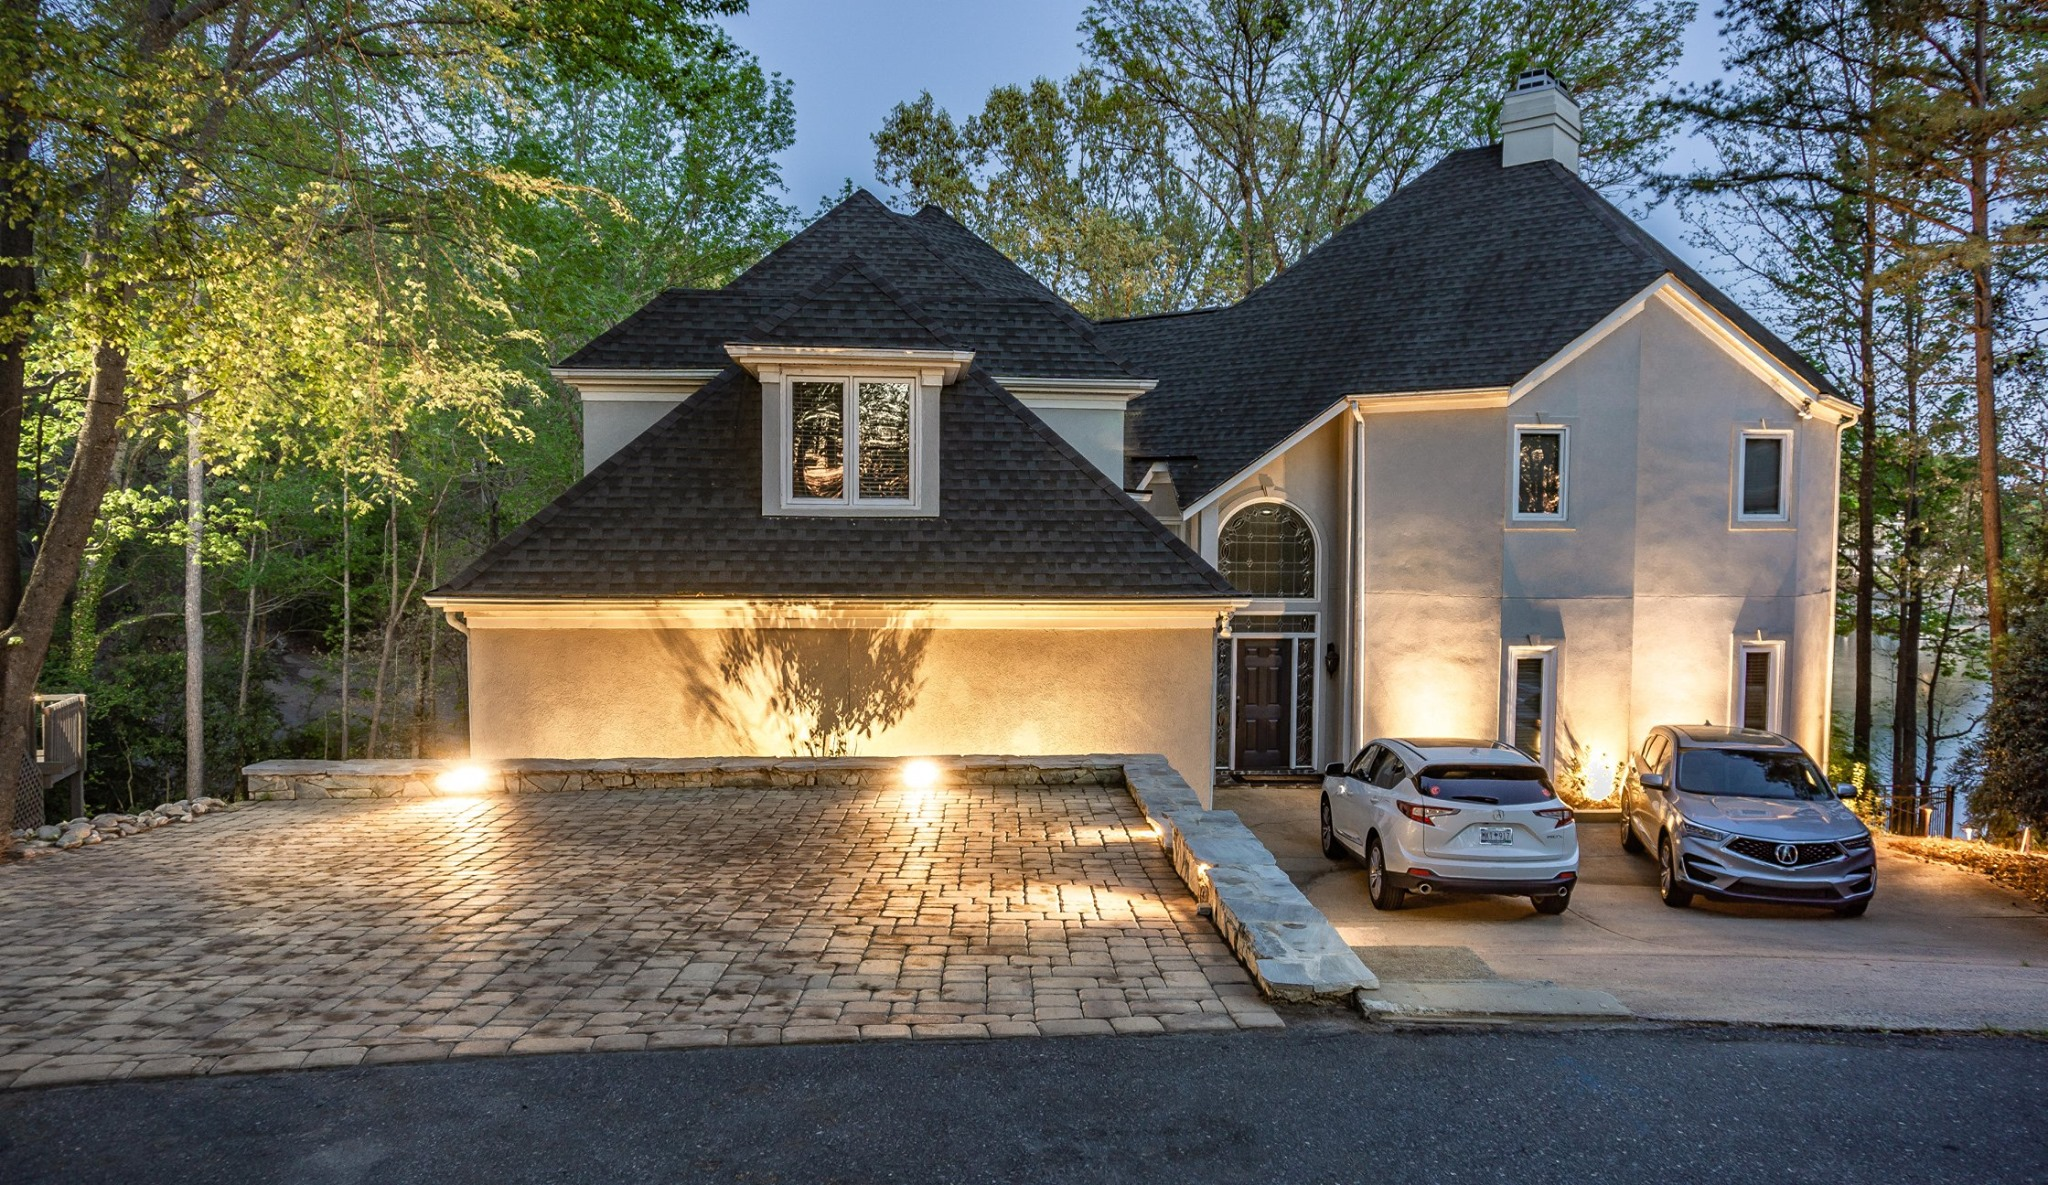 Neighborhood & Commercial Outdoor Lighting In Charlotte